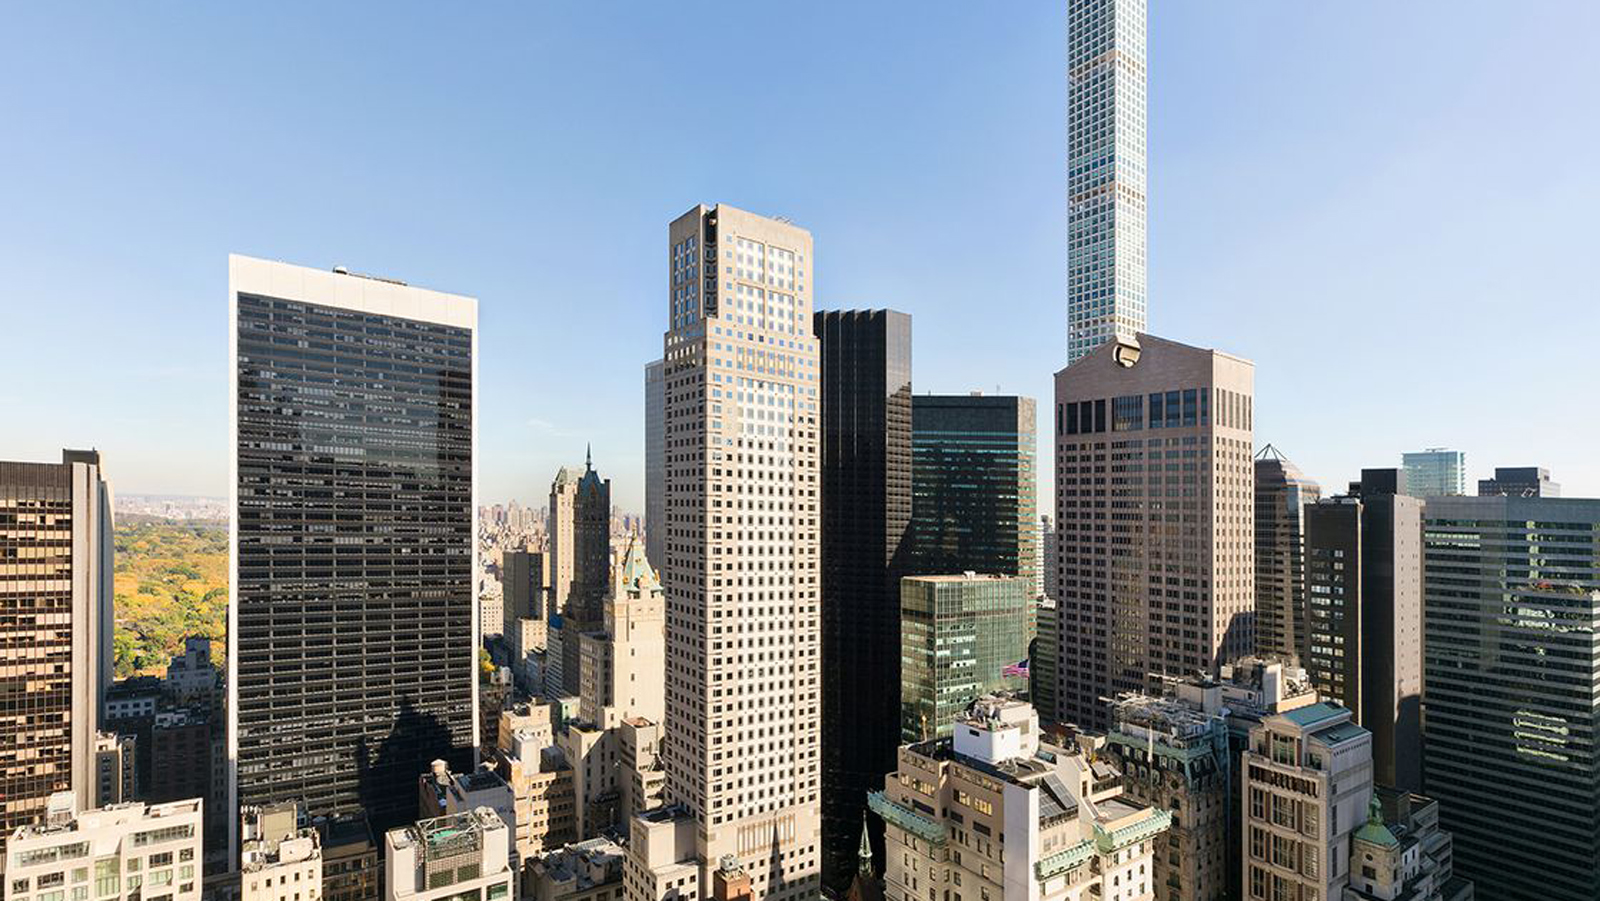 Museum Tower, 15 West 53rd Street